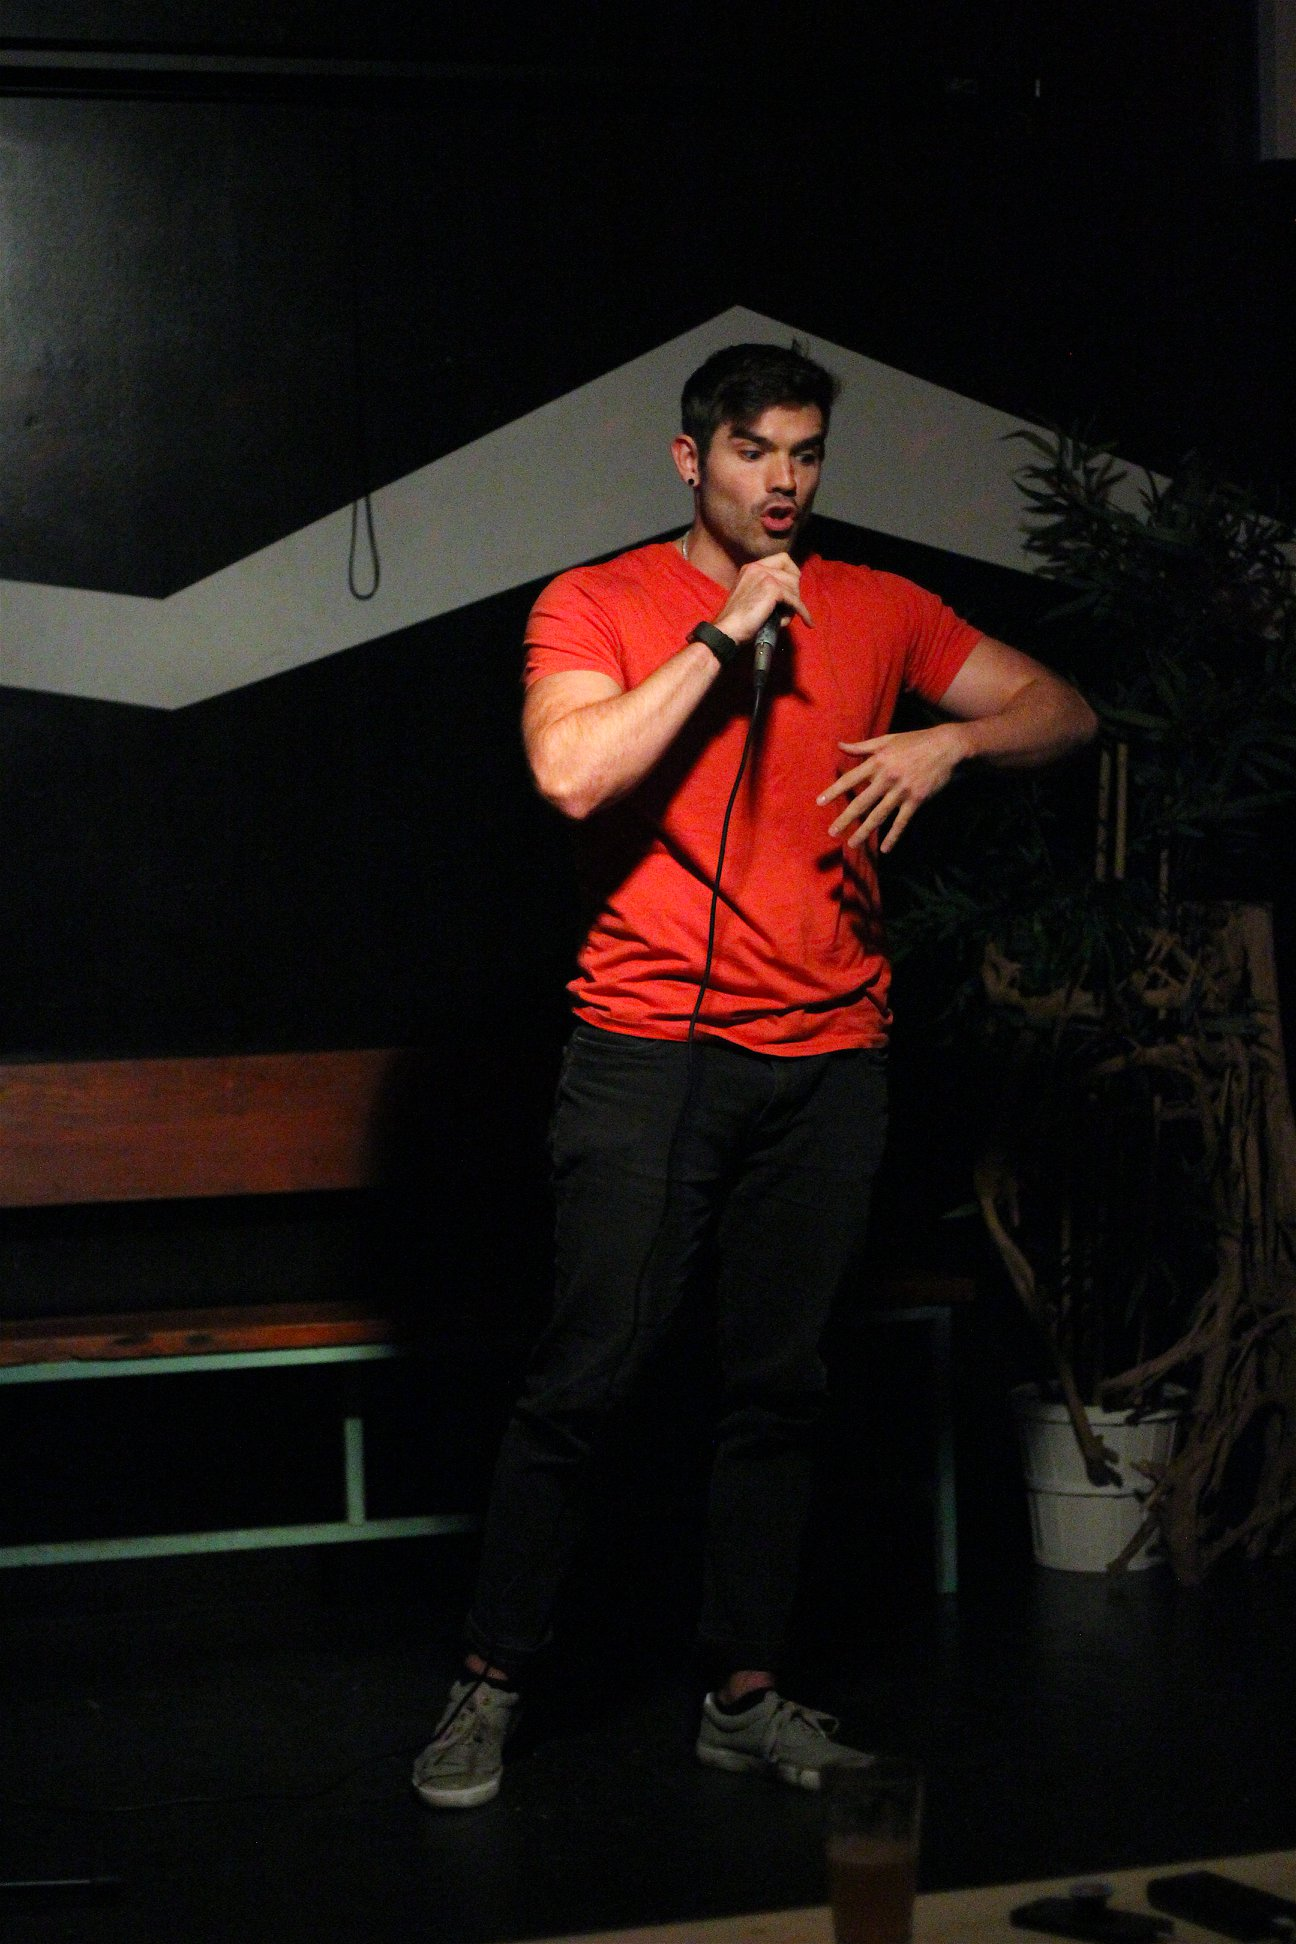 Stand Up at Slick Comedy